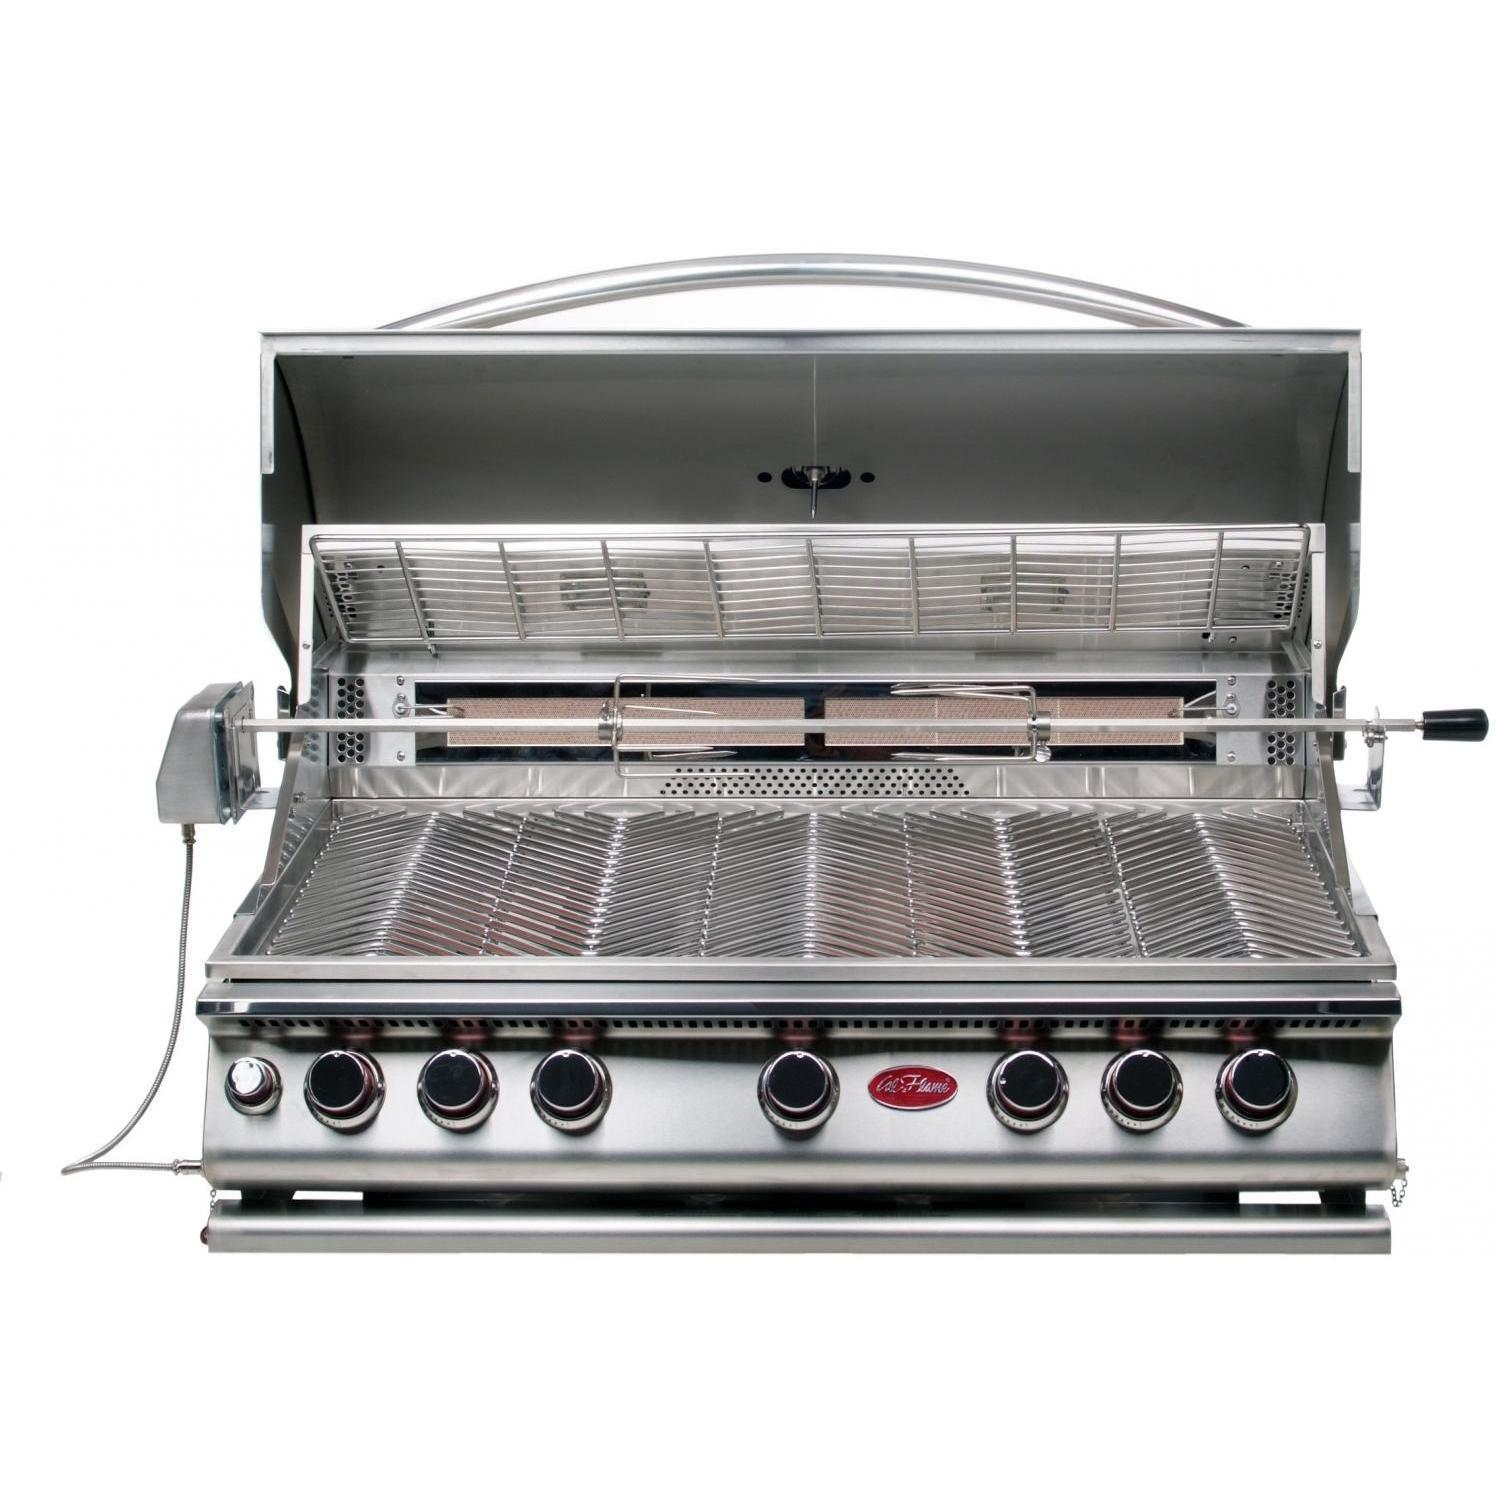 Cal Flame Built In 5 Burner Convection Grill Propane W/ N...